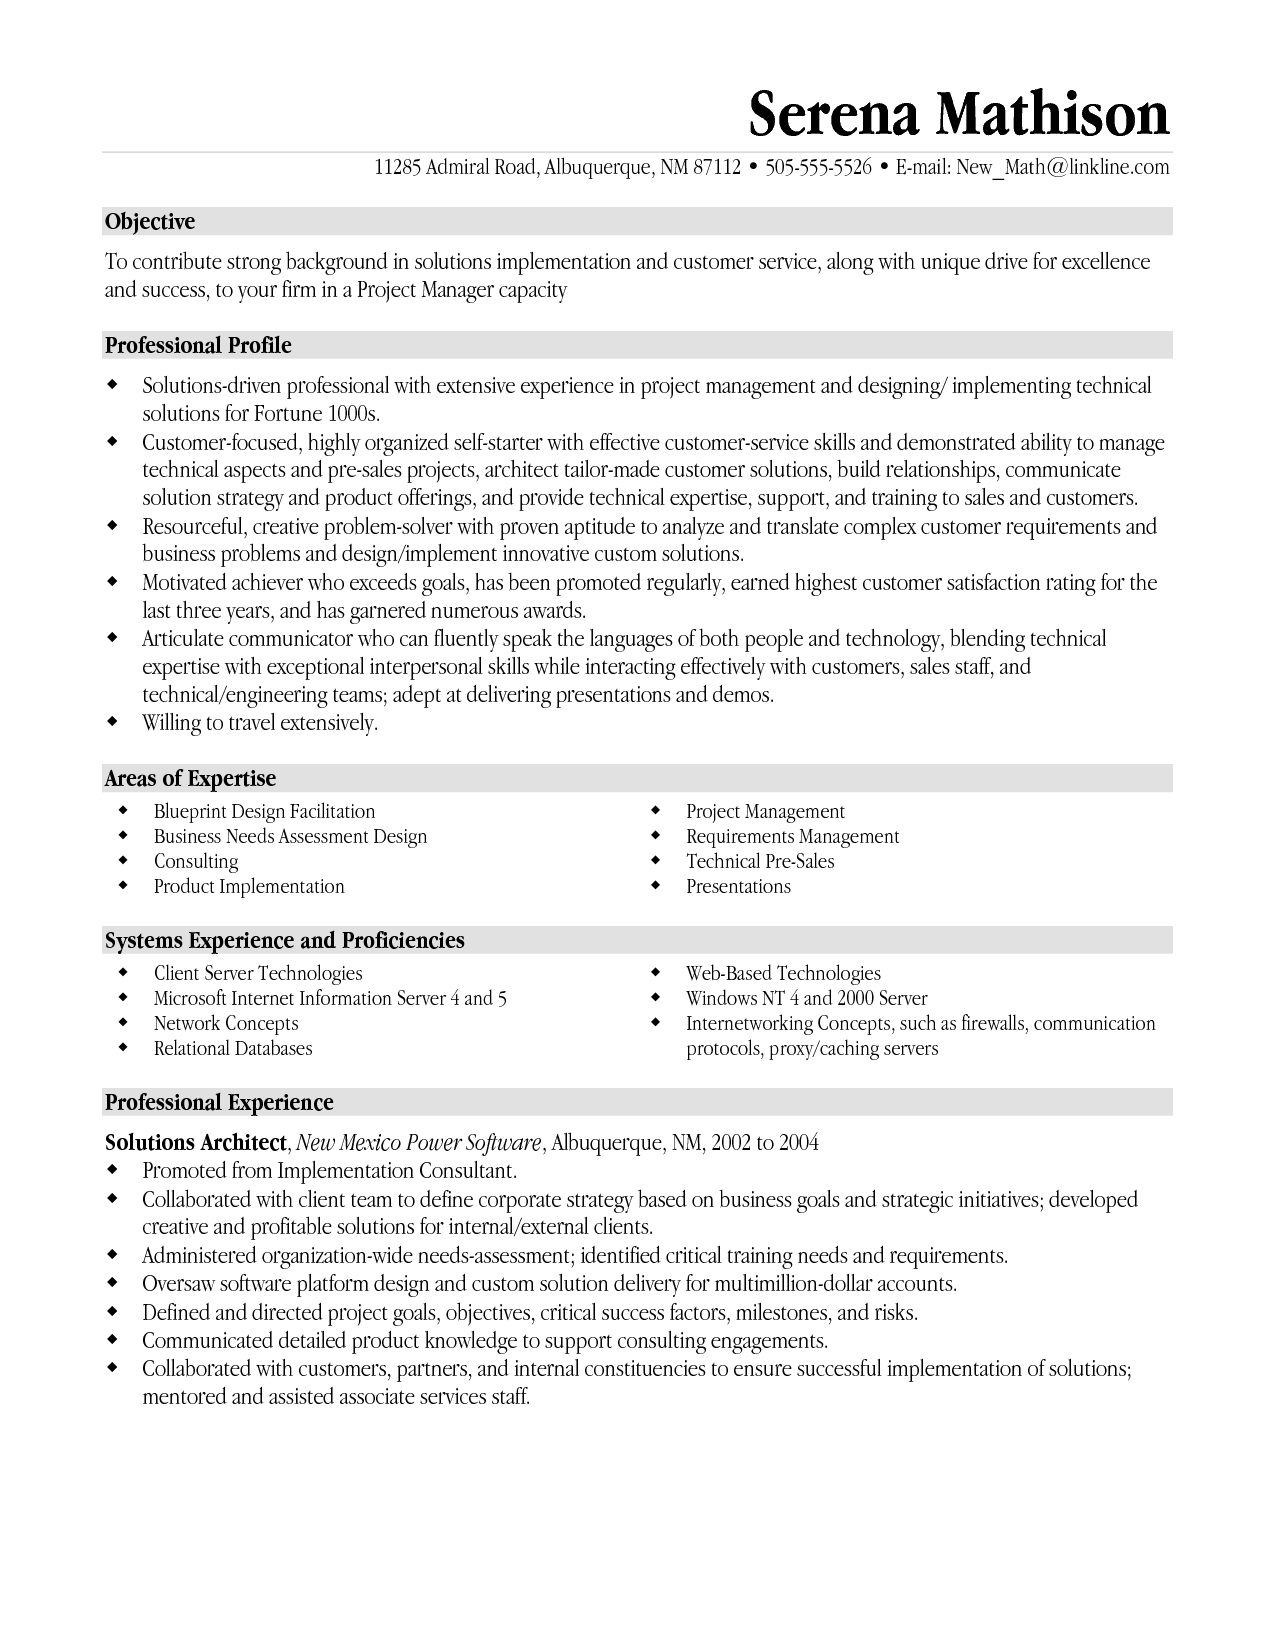 Resume Templates Project Manager | Project Management Resume  Sample Project Management Resume